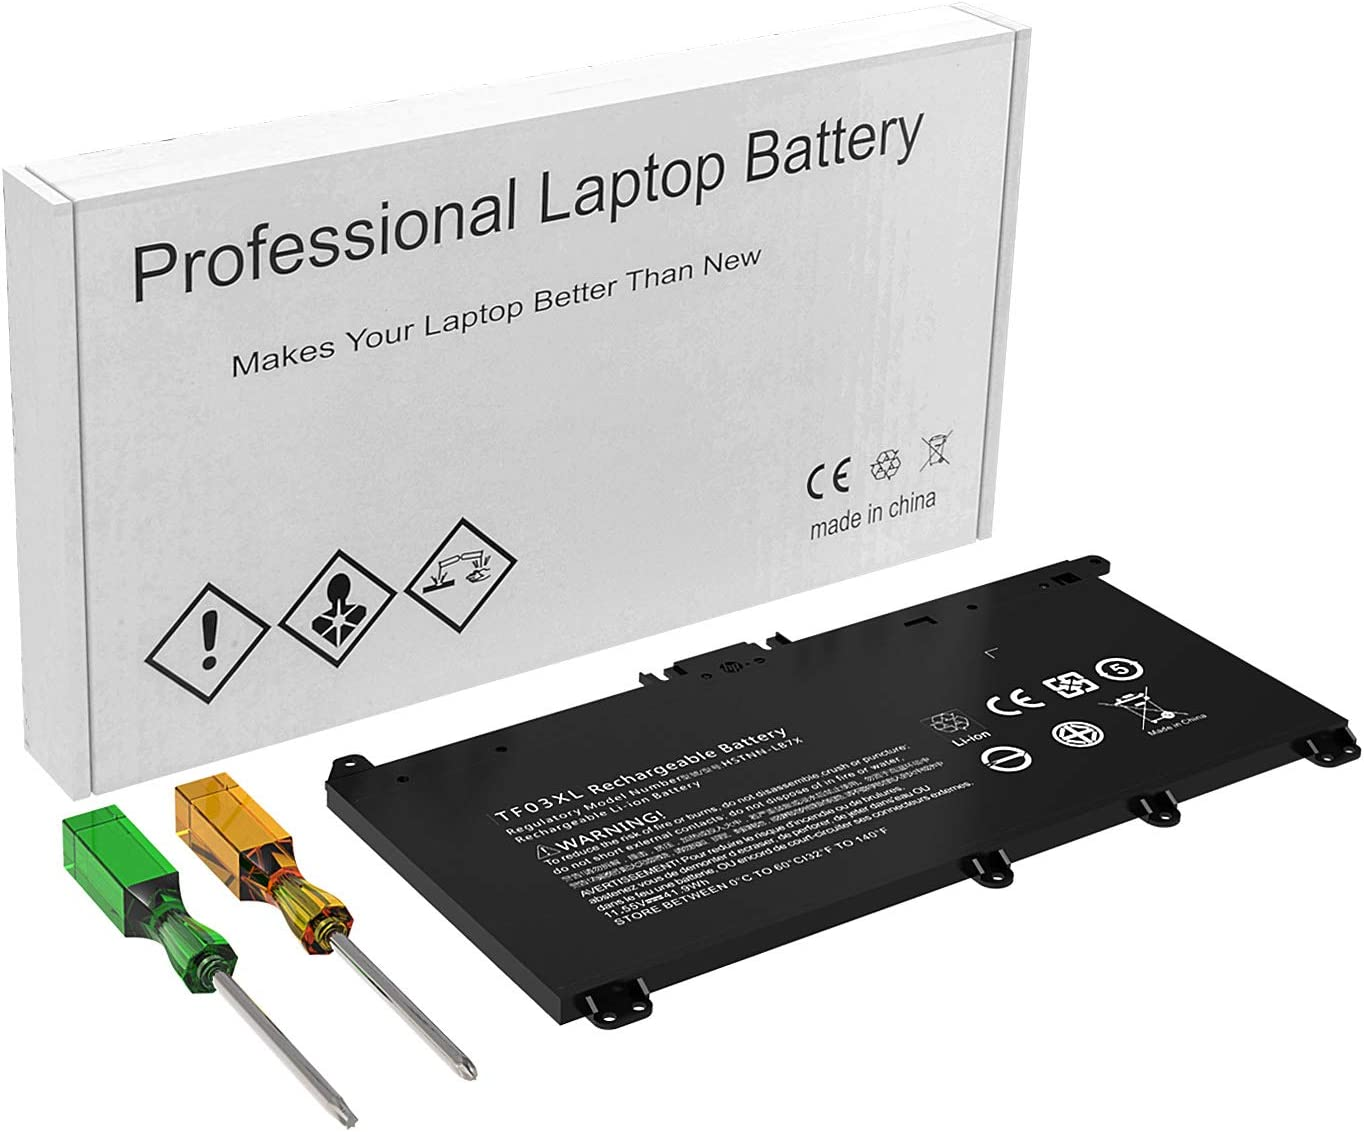 Replacement TF03XL 920046-421 Battery for HP Pavilion 15-CD 15-CC Series 15-cd040wm 15-cc055od 15-cc060wm 15-cc154cl 17-ar050wm HSTNN-IB7Y HSTNN-LB7J 920070-855